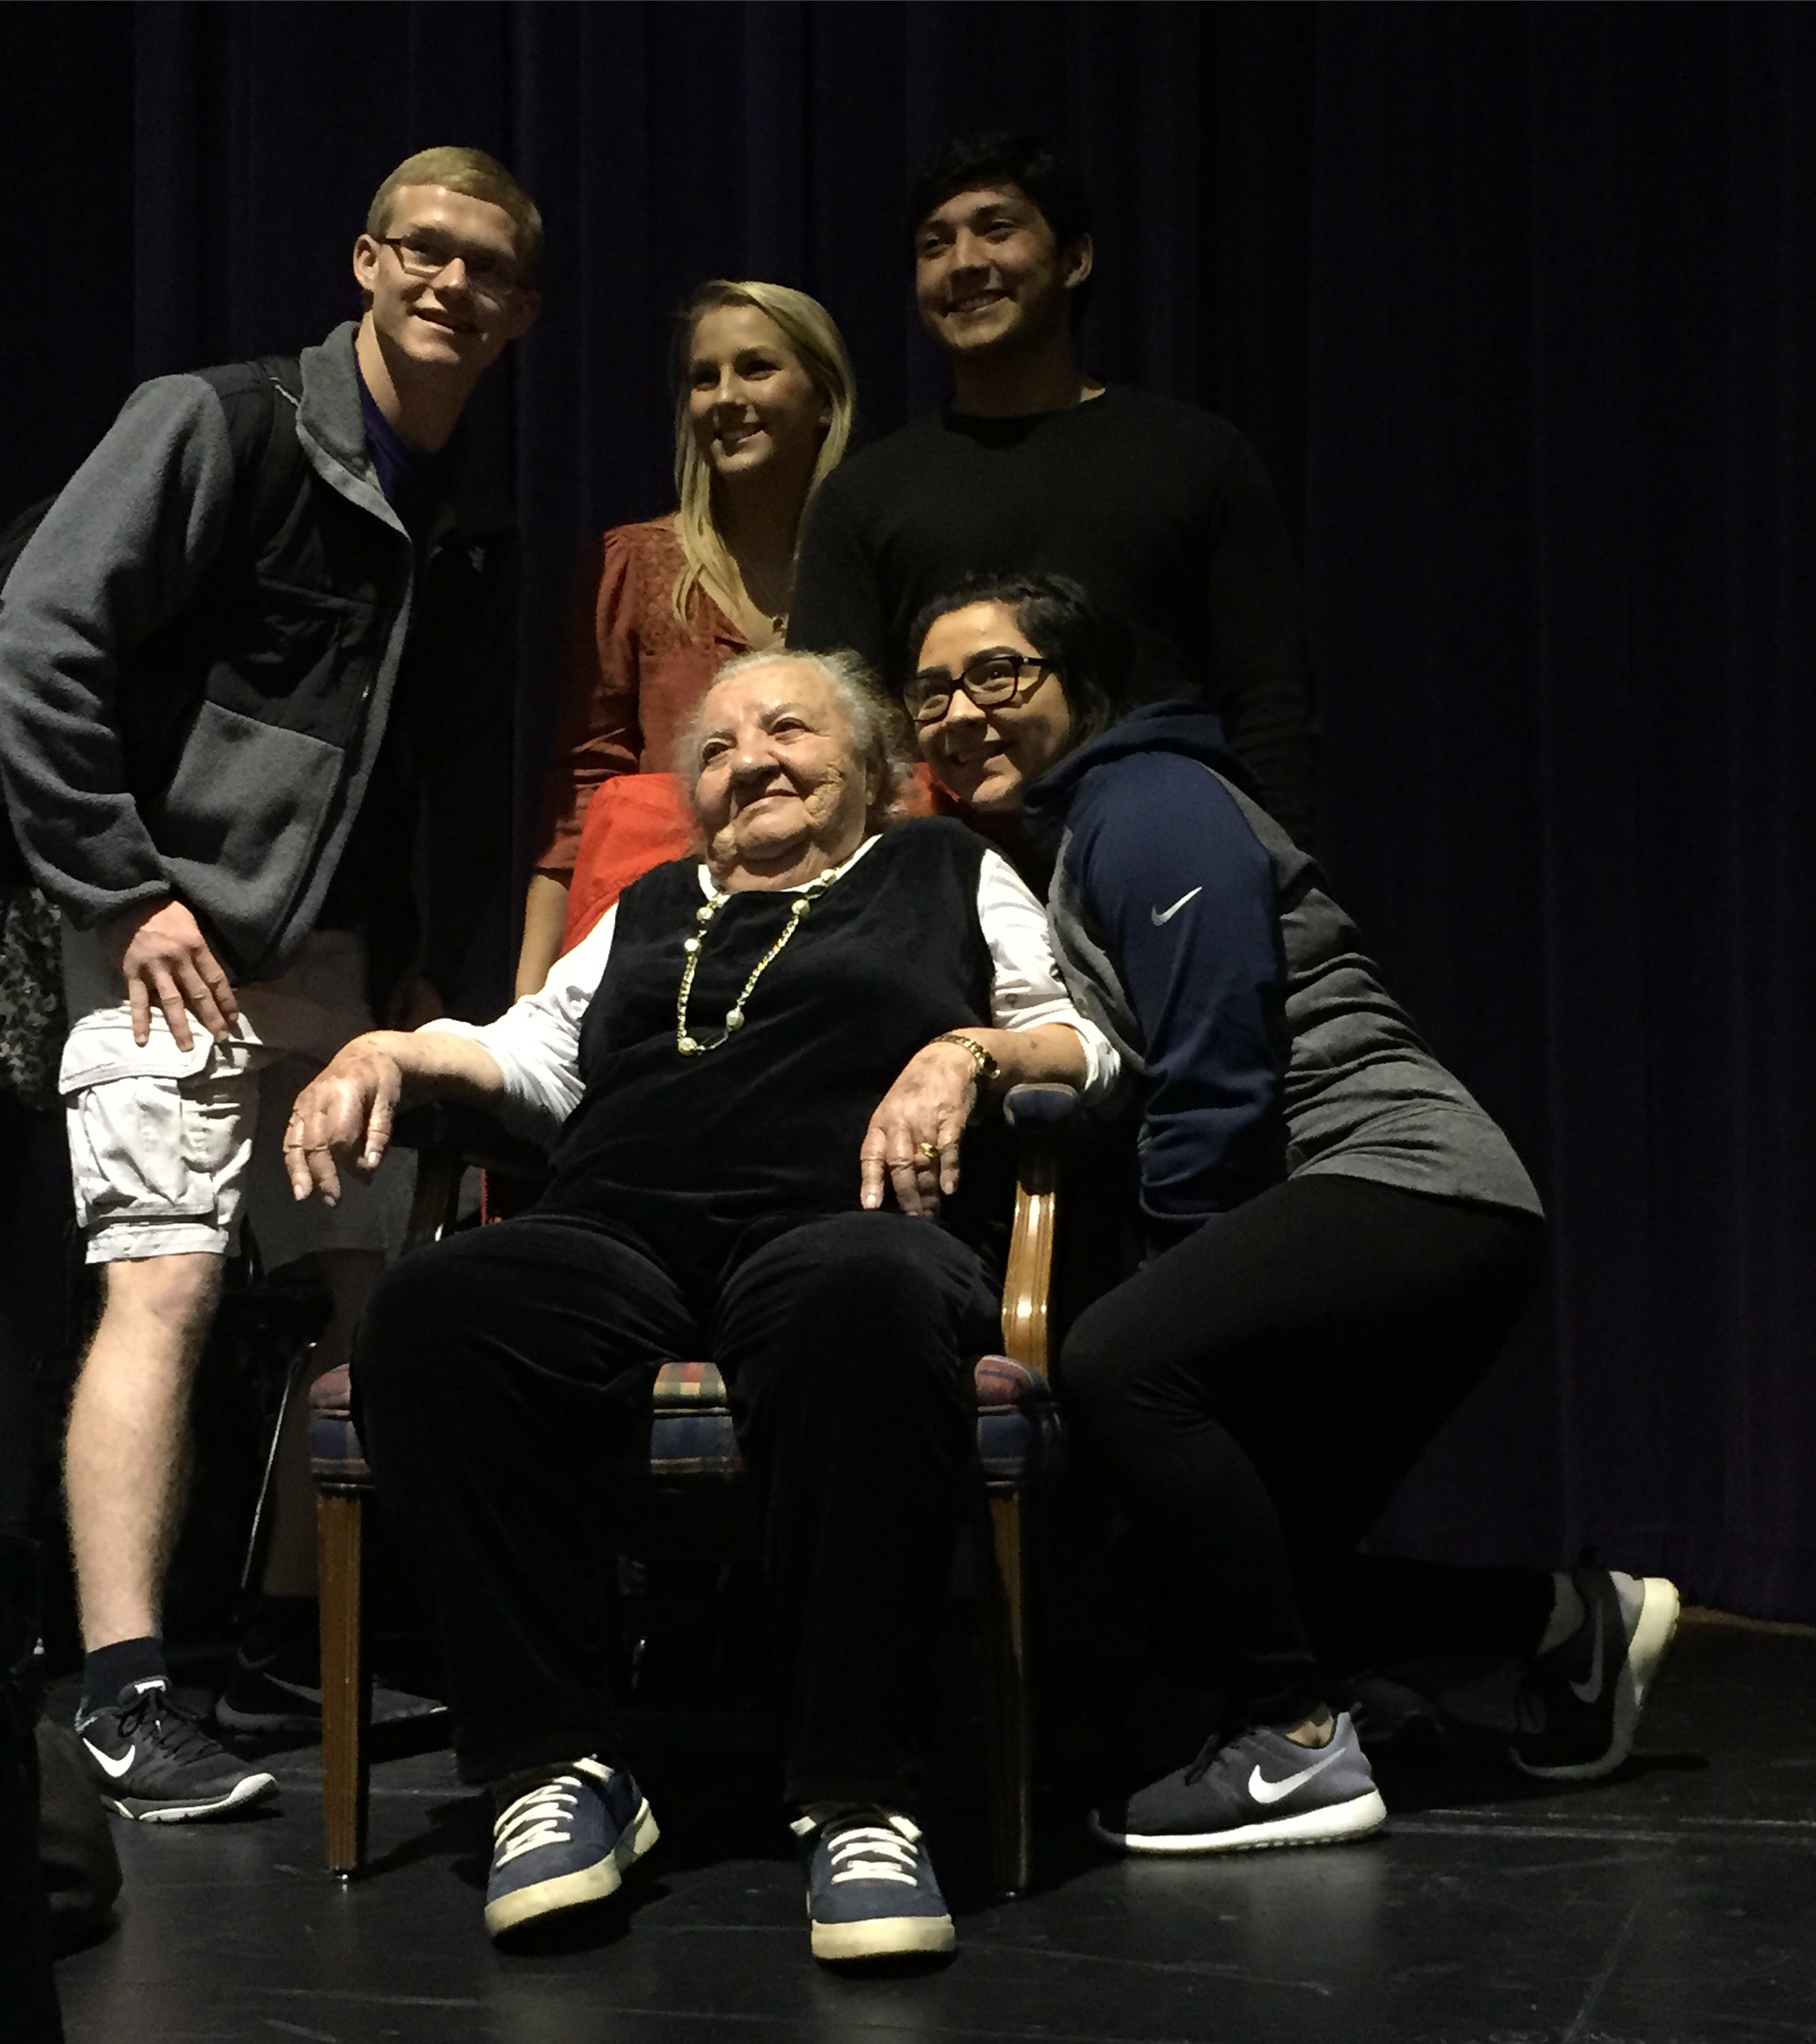 """February 2016. Midland, TX.  Midland High School students pose for a picture with Rosa Blum, 88, a Holocaust survivor who came to speak to the tenth grade English II students. They are reading Elie Wiesel's """"Night"""". Blum lost her entire family in Auschwitz. She was just 15 when her family was deported from Romania to the concentration camp. """"Somehow you get strength even when there is no strength available,"""" Blum said in response to a student's question about how she coped and survived. """"I remember they used to say at home, 'metal breaks, a human holds out.' That's how the strength had to come...it changed me a lot. I look at life different. I value everything. I don't want too much, as long as I can live and go on and do whatever I'm doin'. I'm happy with what I am."""" Students lined up to take photos with Blum after her talk. One student was particularly touched. """"This impacted me a lot,"""" said Melynna Morgan, her eyes wet. """"What happened in the Holocaust back then, it is possible for it to happen again...people, they deserve respect...people are equal, and people shouldn't be separated from their families."""" She was alluding to the current climate she and her peers are growing up in-one full of hatred, xenophobia and anti-immigrant and refugee sentiments--much like the States were in 1938. Full story here:  http://www.mrt.com/news/education/article_811f49c8-db6c-11e5-9c53-93ccdd90c8e1.html? TNNoMobile  #SnapshotLives    #Holocaust    #refugees  #hate    #fear    #fearkills    #silence    #silencekills  #love    #peace    #MidlandTX    #usa    #syria  #immigration    #survivor    #survival"""